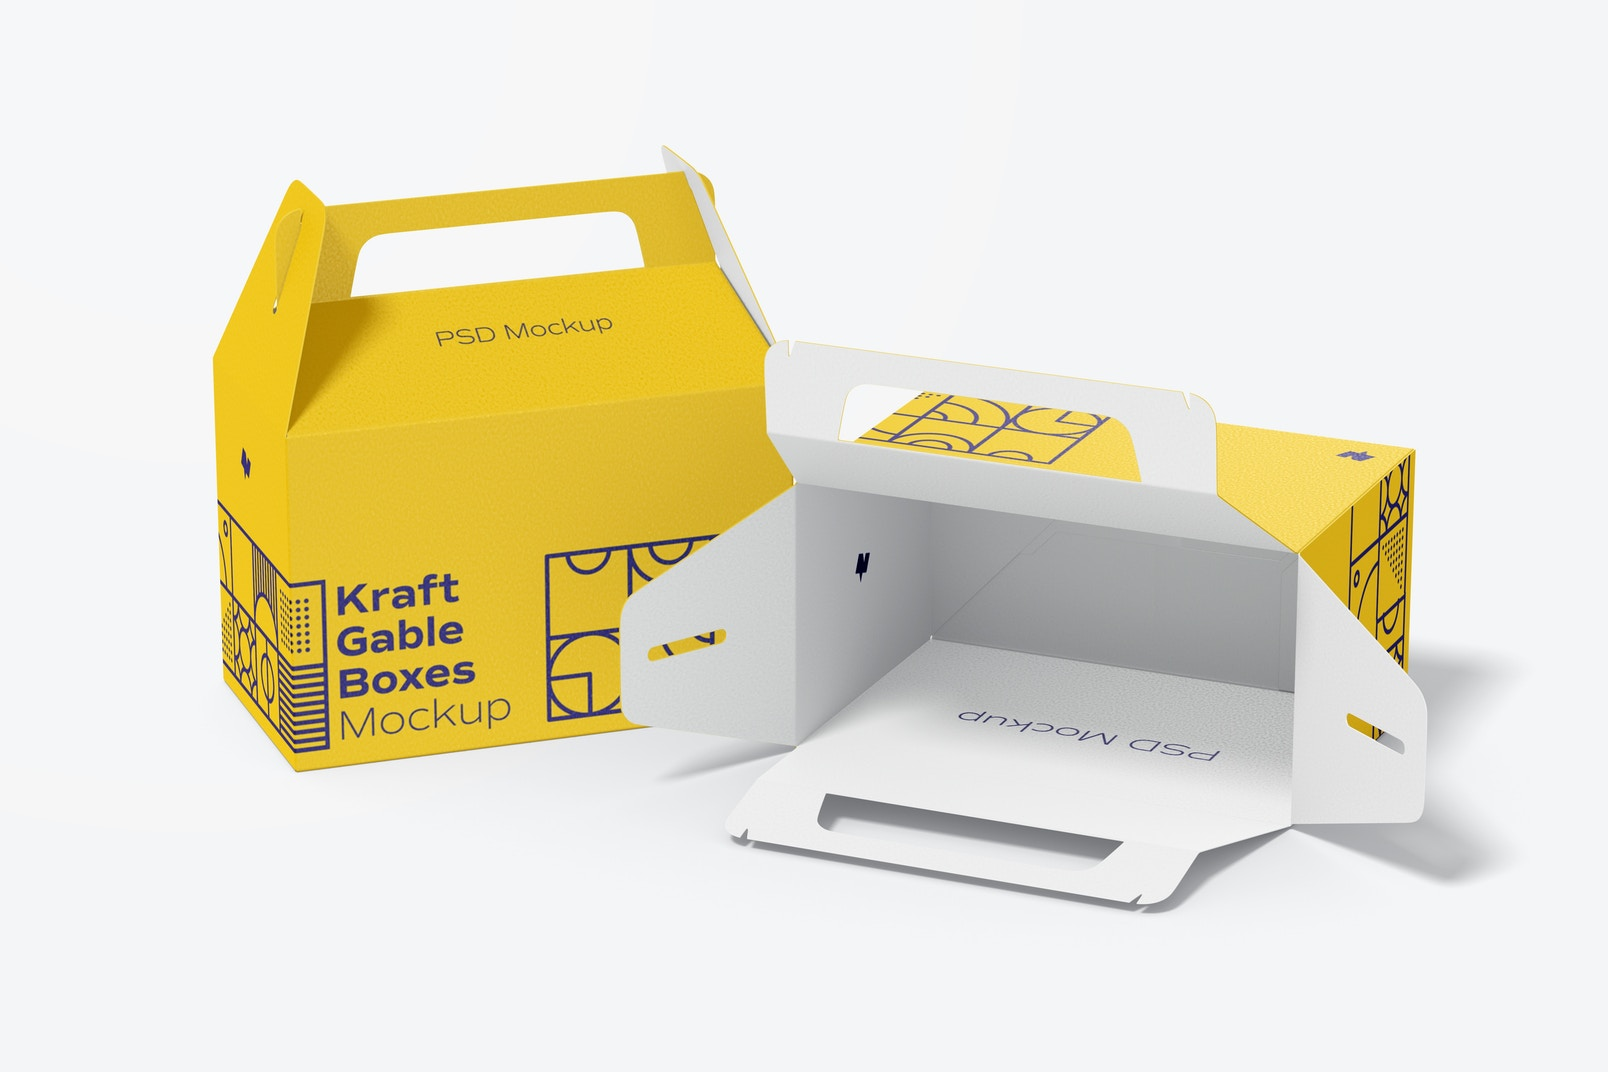 Kraft Gable Boxes Mockup, Opened and Closed